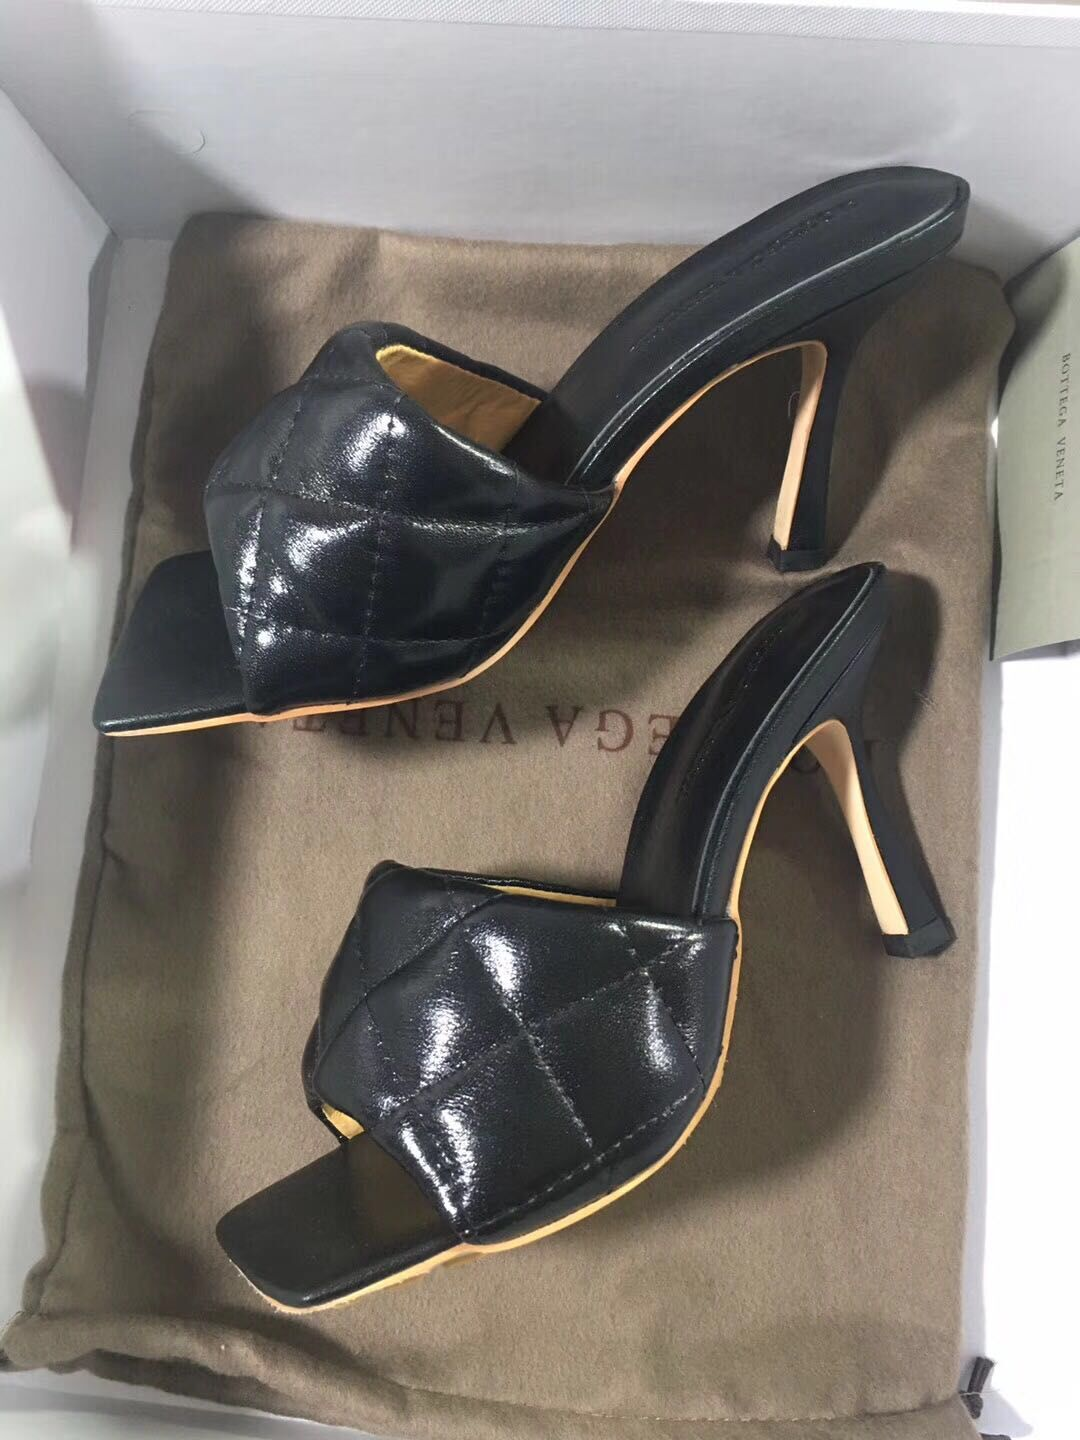 Bottega Veneta Shoes BV32657 Patent Black